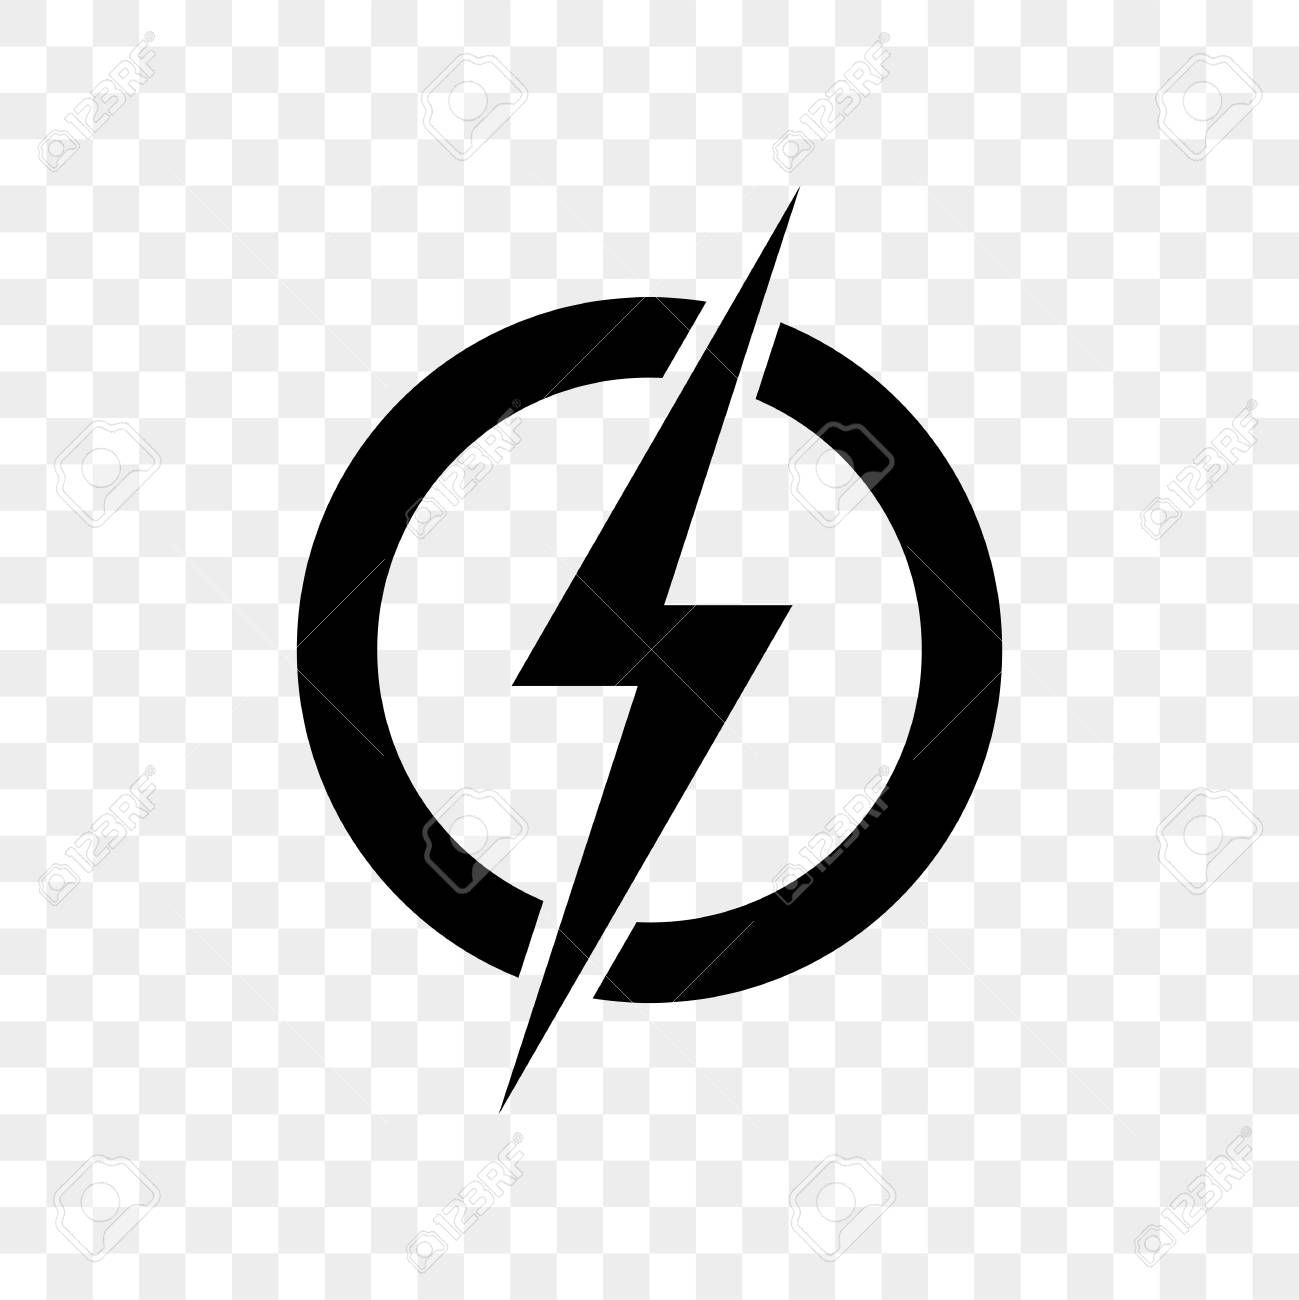 power lightning logo icon vector black thunder bolt symbol isolated royalty free cliparts vectors and stock illustration image 99974761 power lightning logo icon vector black thunder bolt symbol isolated